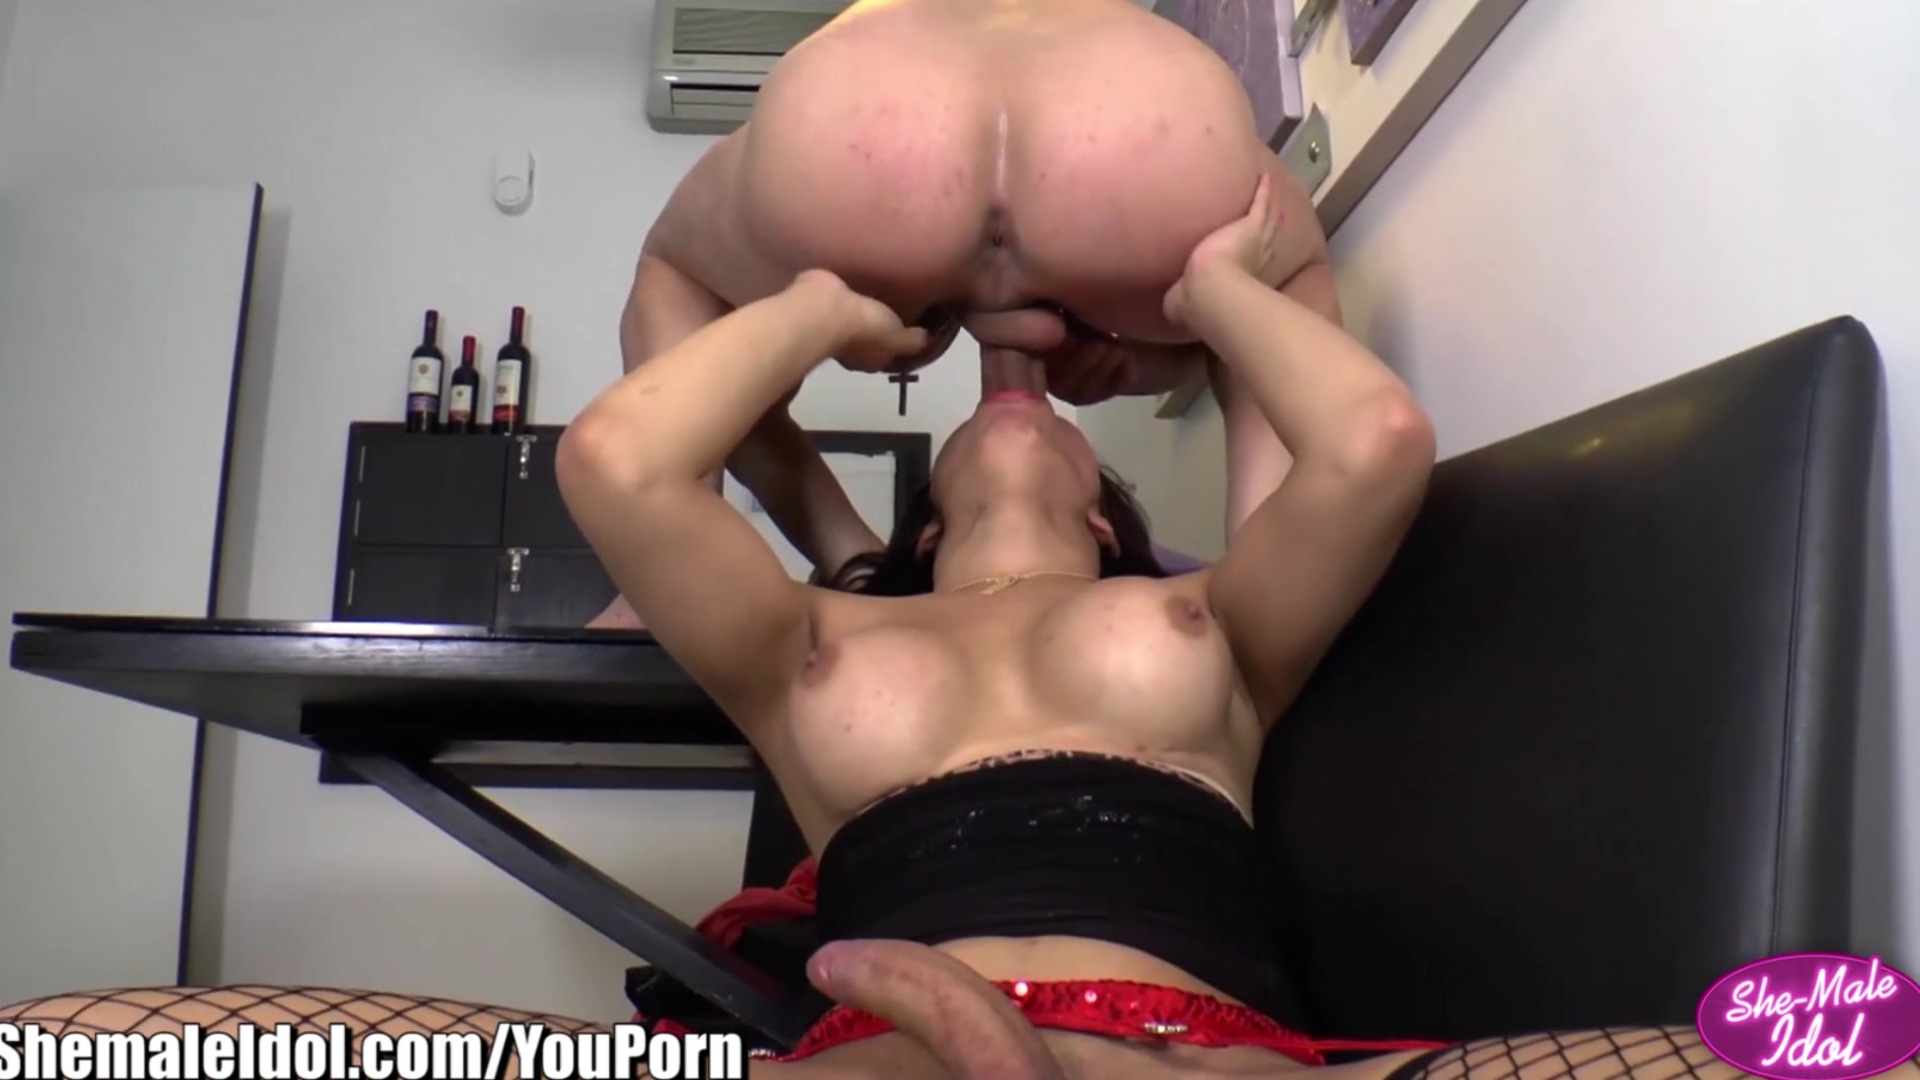 ShemaleIdol Alex Victor fucks and Blows Tgirl